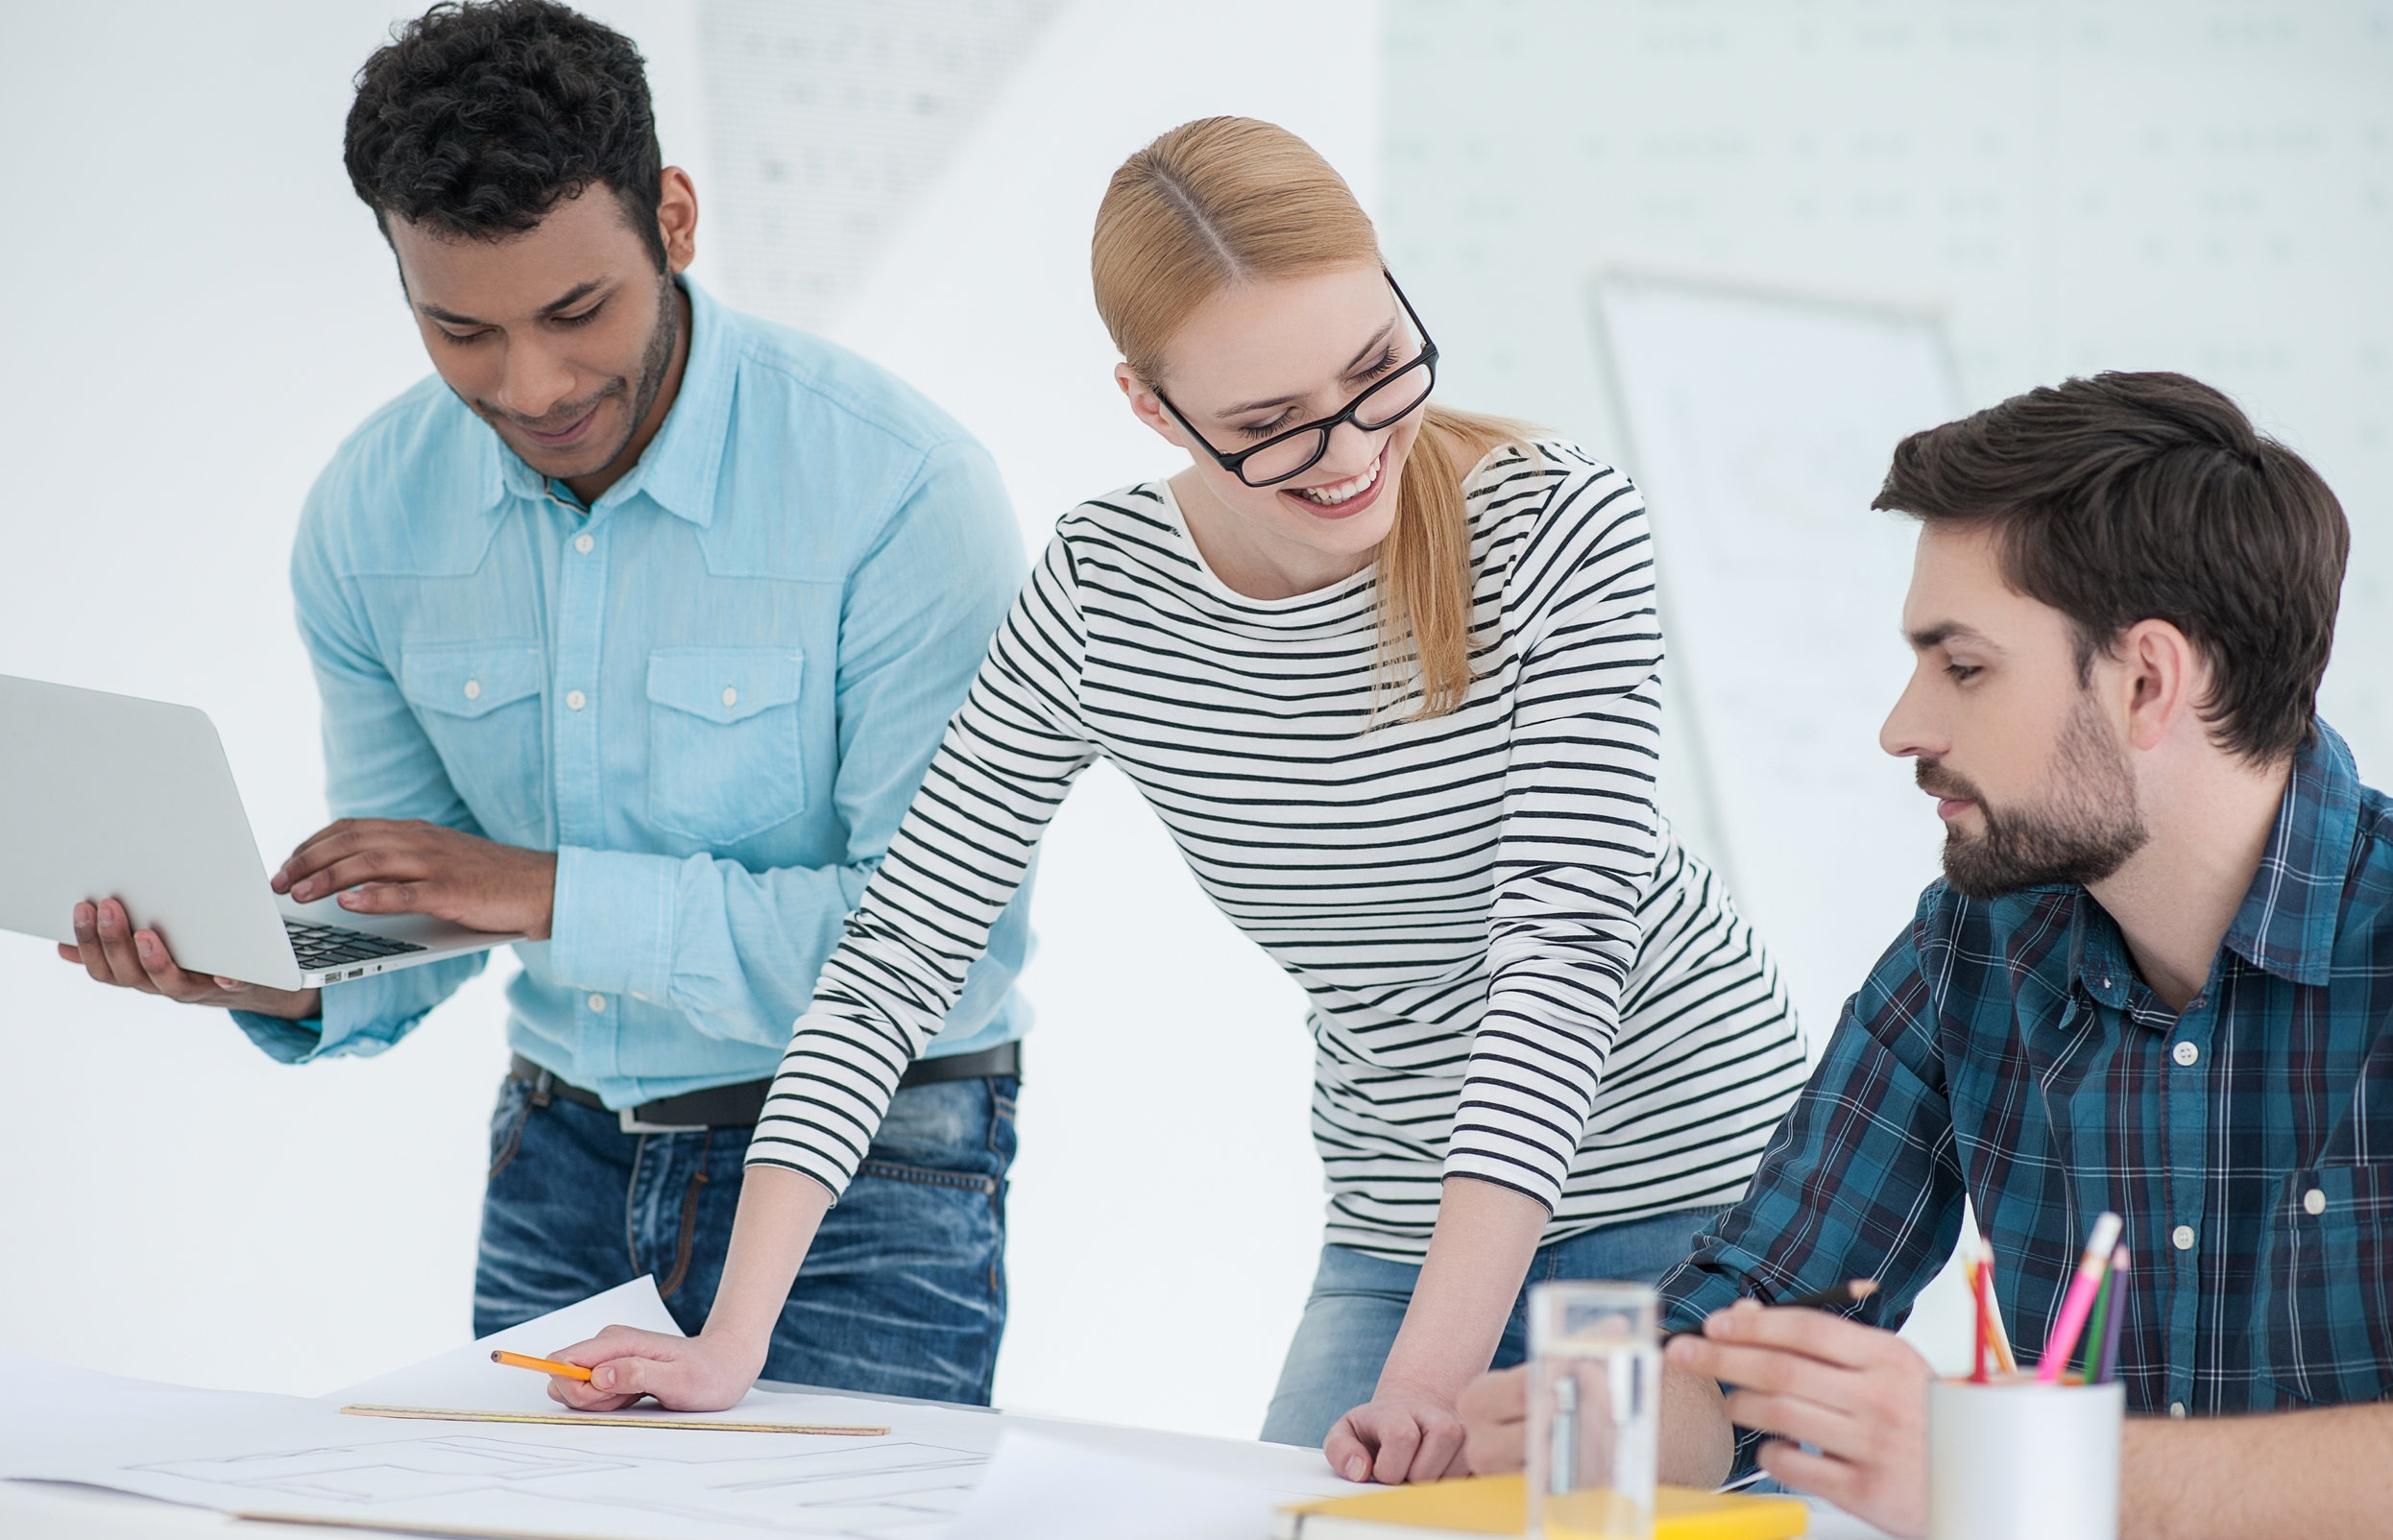 Group of architects discussing plans in modern office AdobeStock_124394963.jpeg